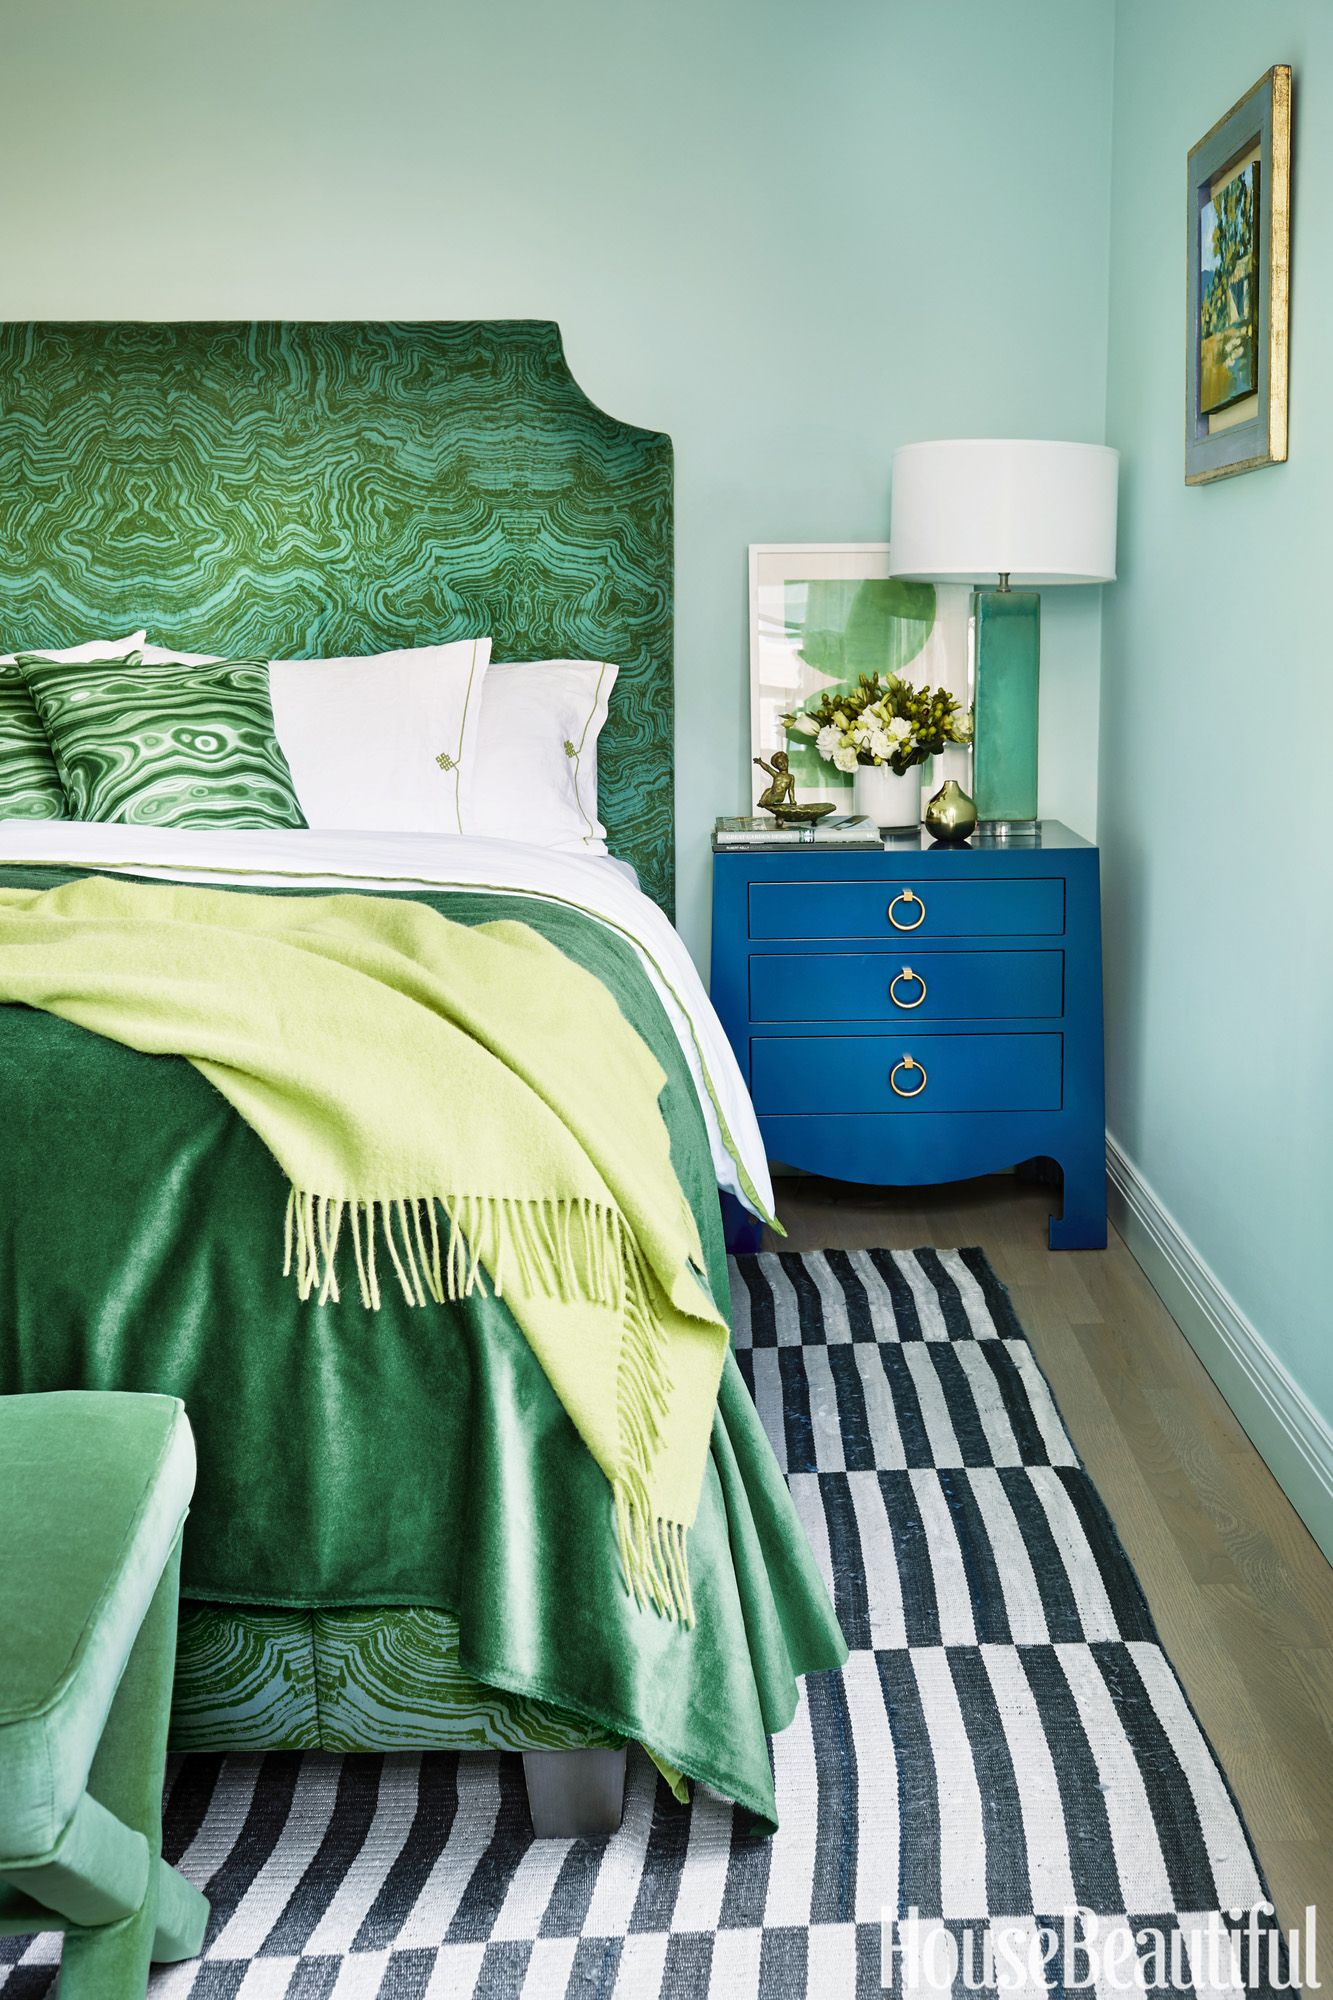 17 Dreamy Green Bedrooms - Best Decor Ideas for Green Bedroom